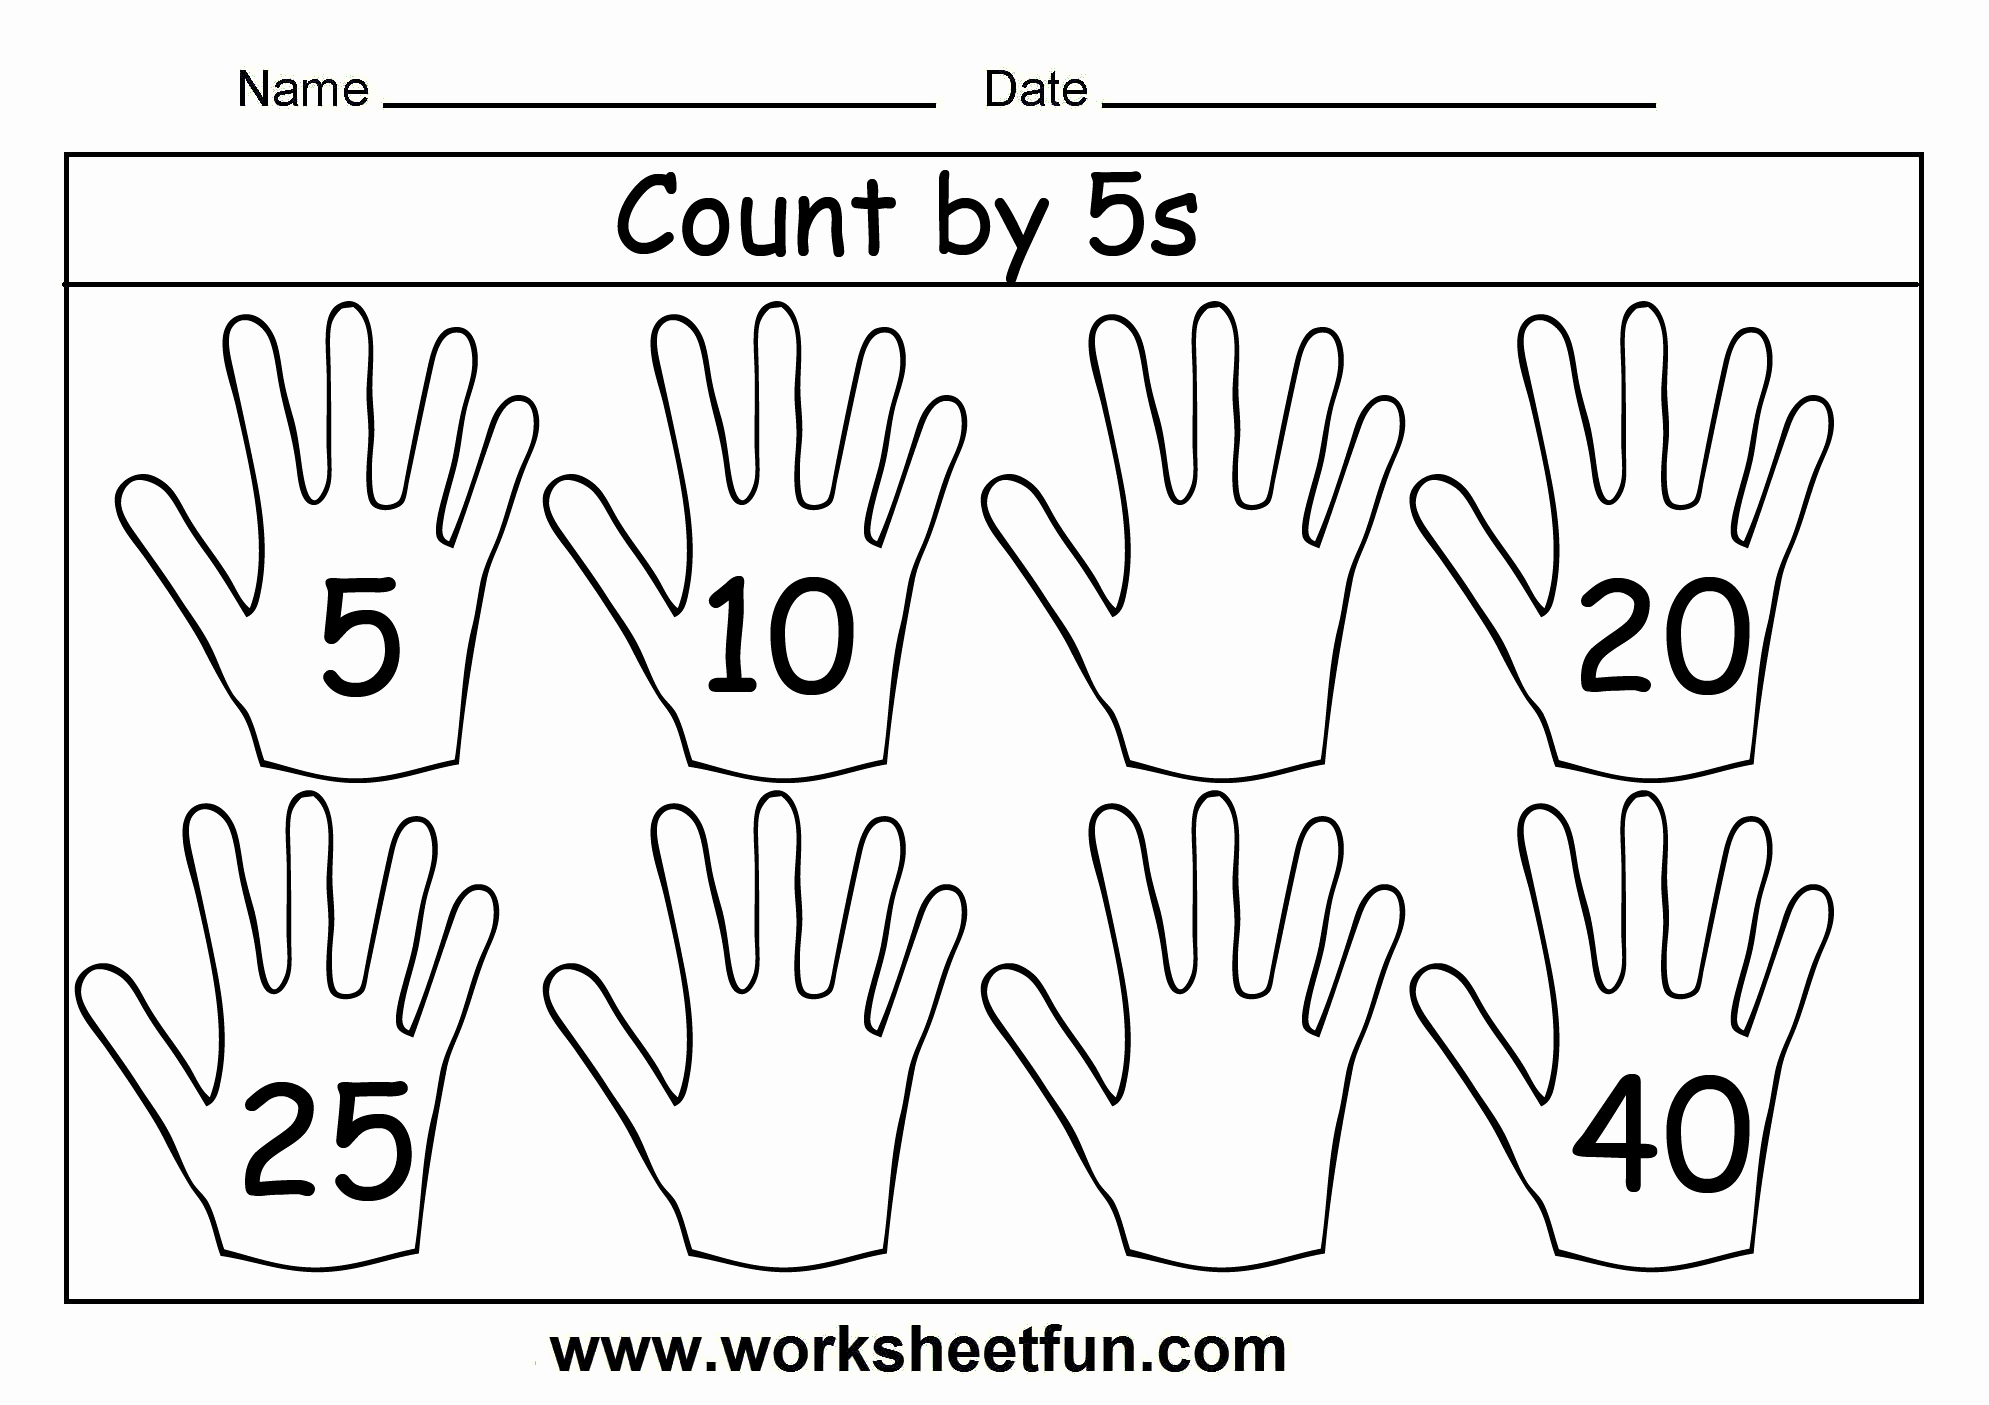 Count by 5s Worksheet Inspirational Count by 5s – 3 Worksheets Free Printable Worksheets